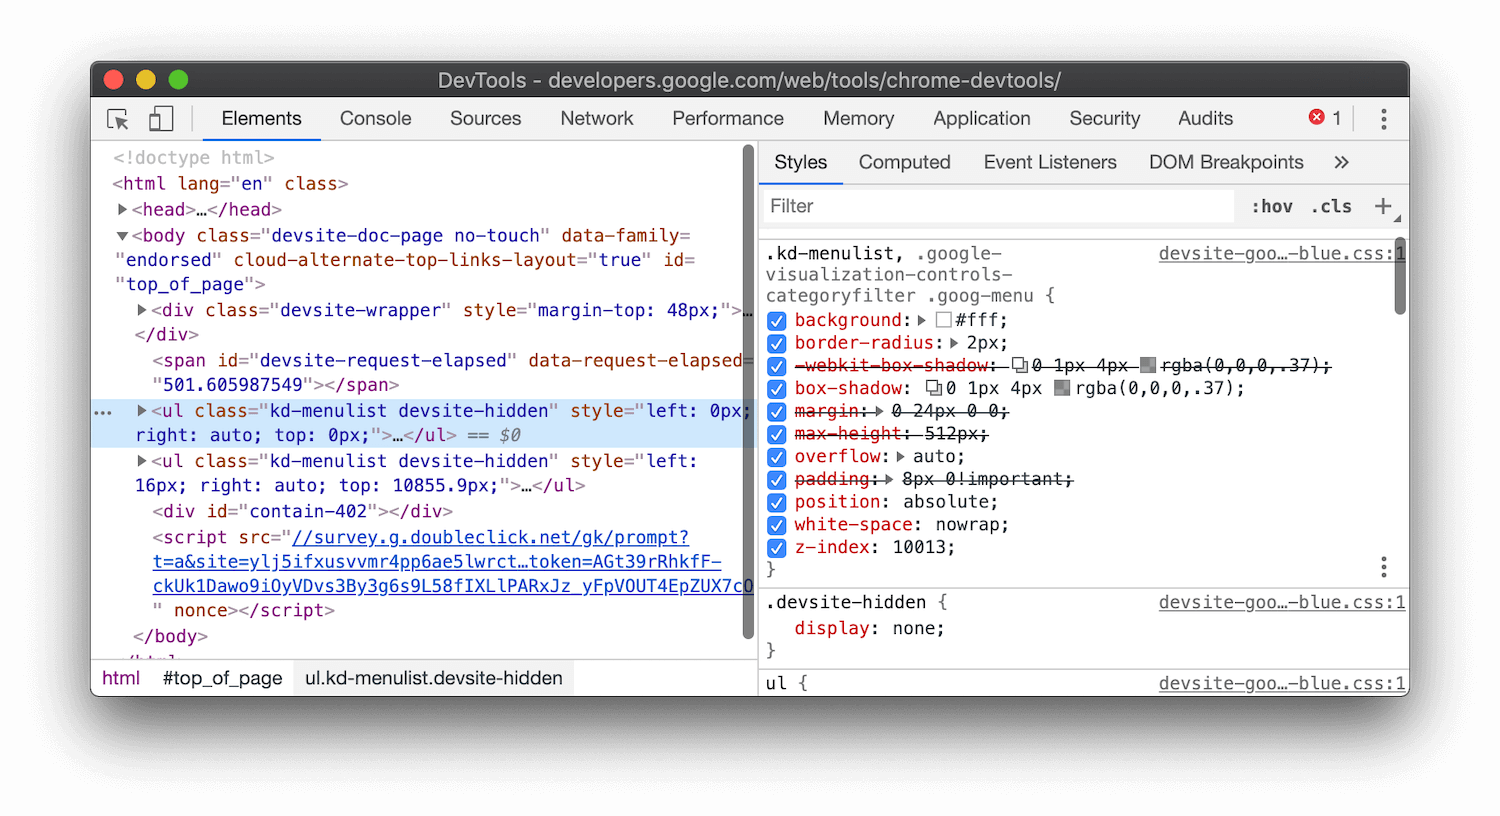 A 'max-height: 512px' declaration is crossed out in the Styles pane of Chrome DevTools.